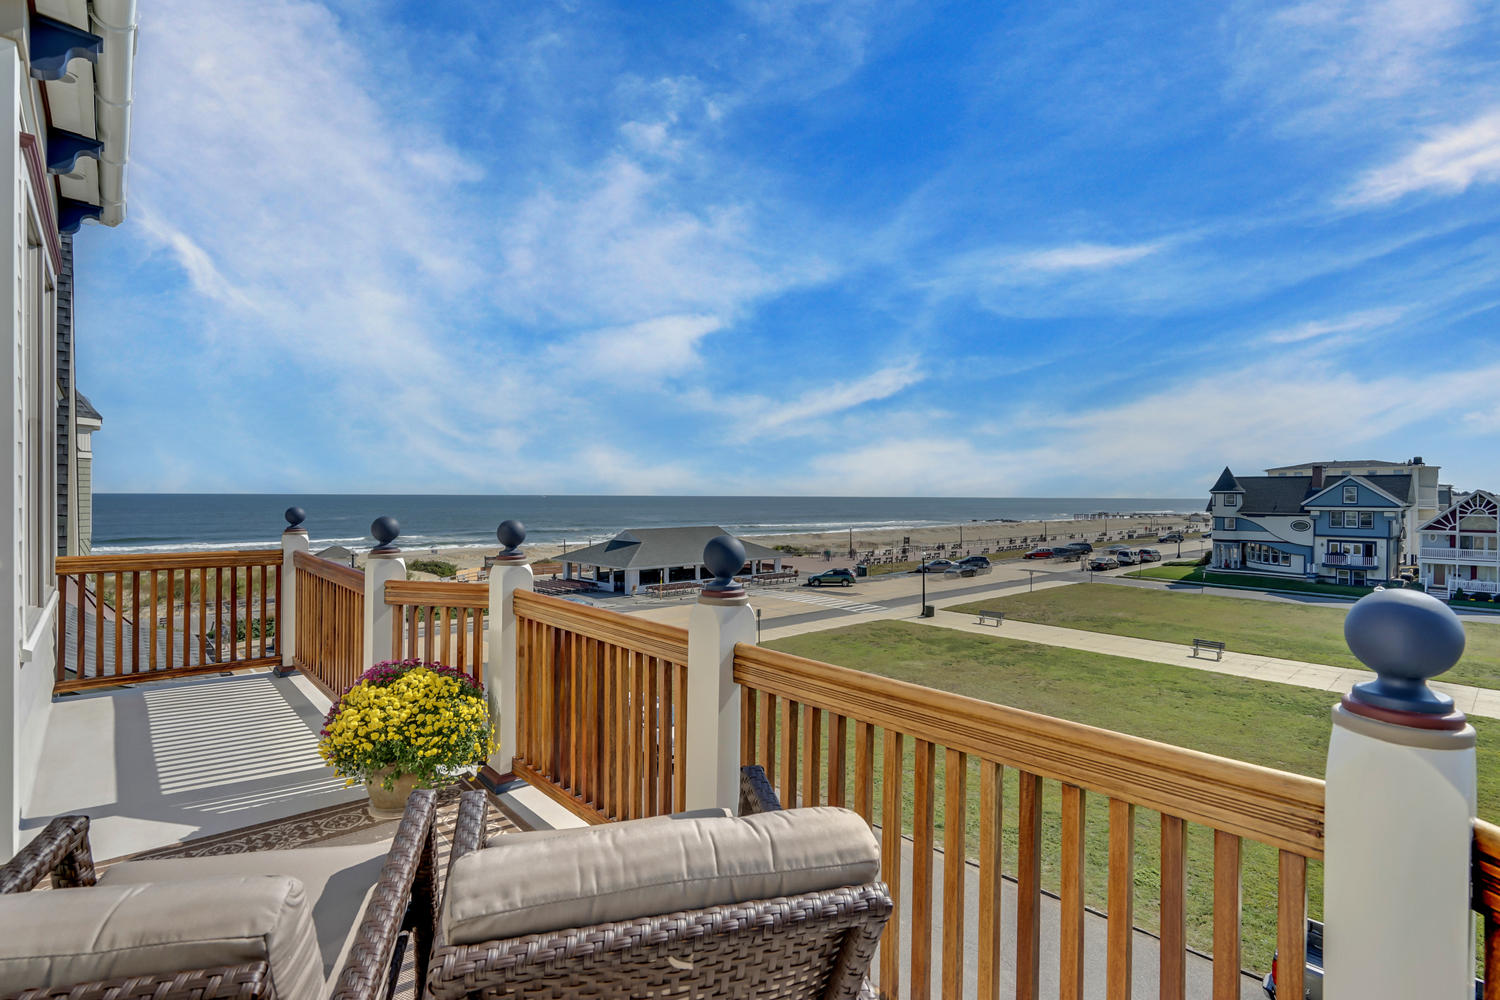 Single Family Home for Sale at Custom Seaside Victorian In Ocean Grove! 1 Ocean Pathway Ocean Grove, New Jersey 07756 United States